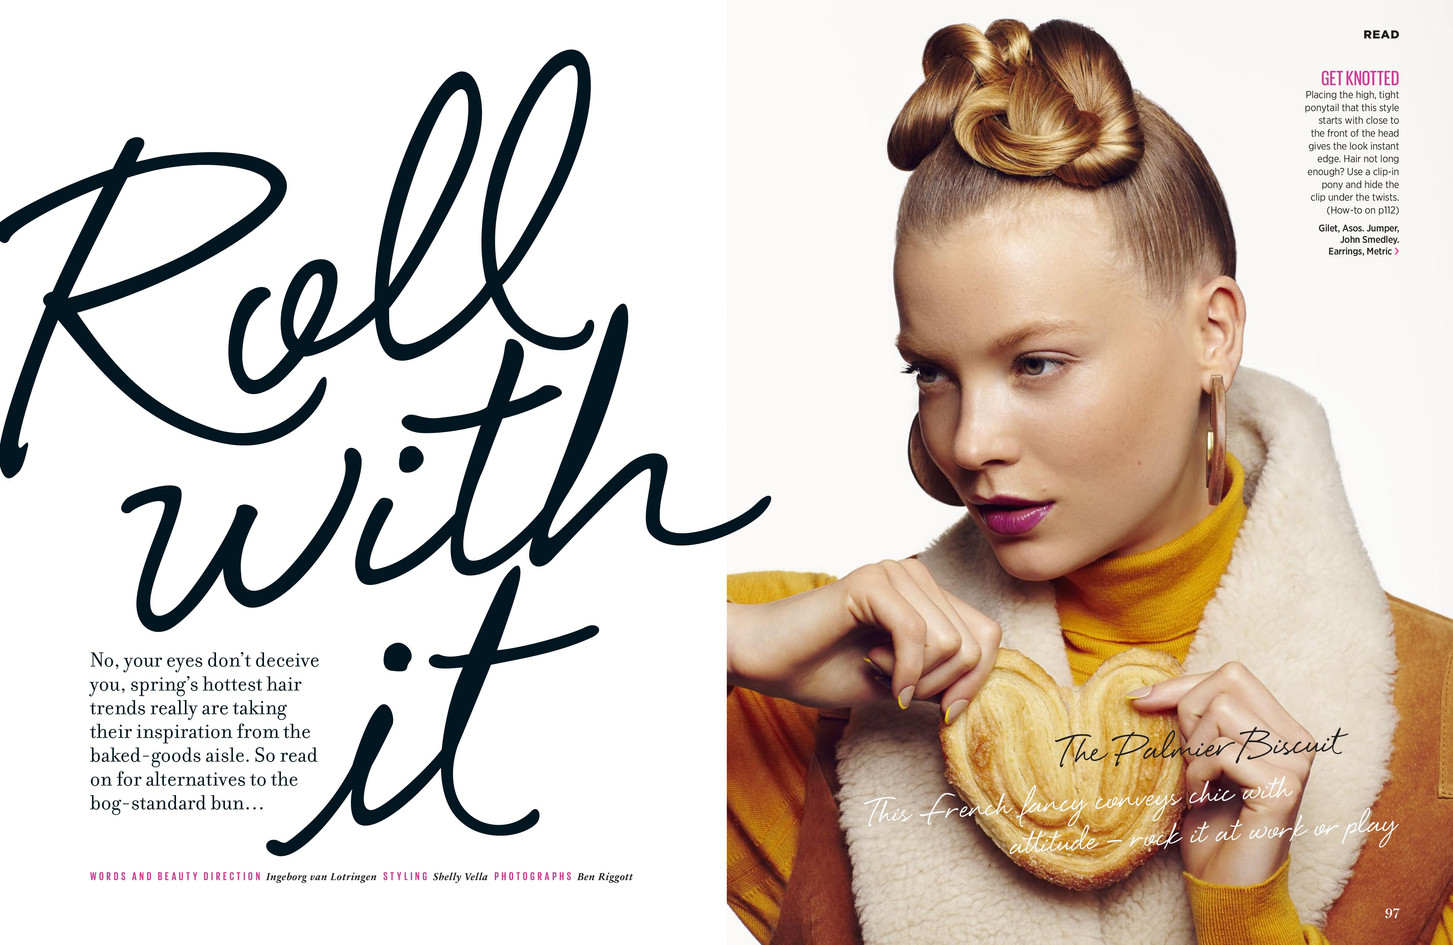 Roll with it – Cosmopolitan